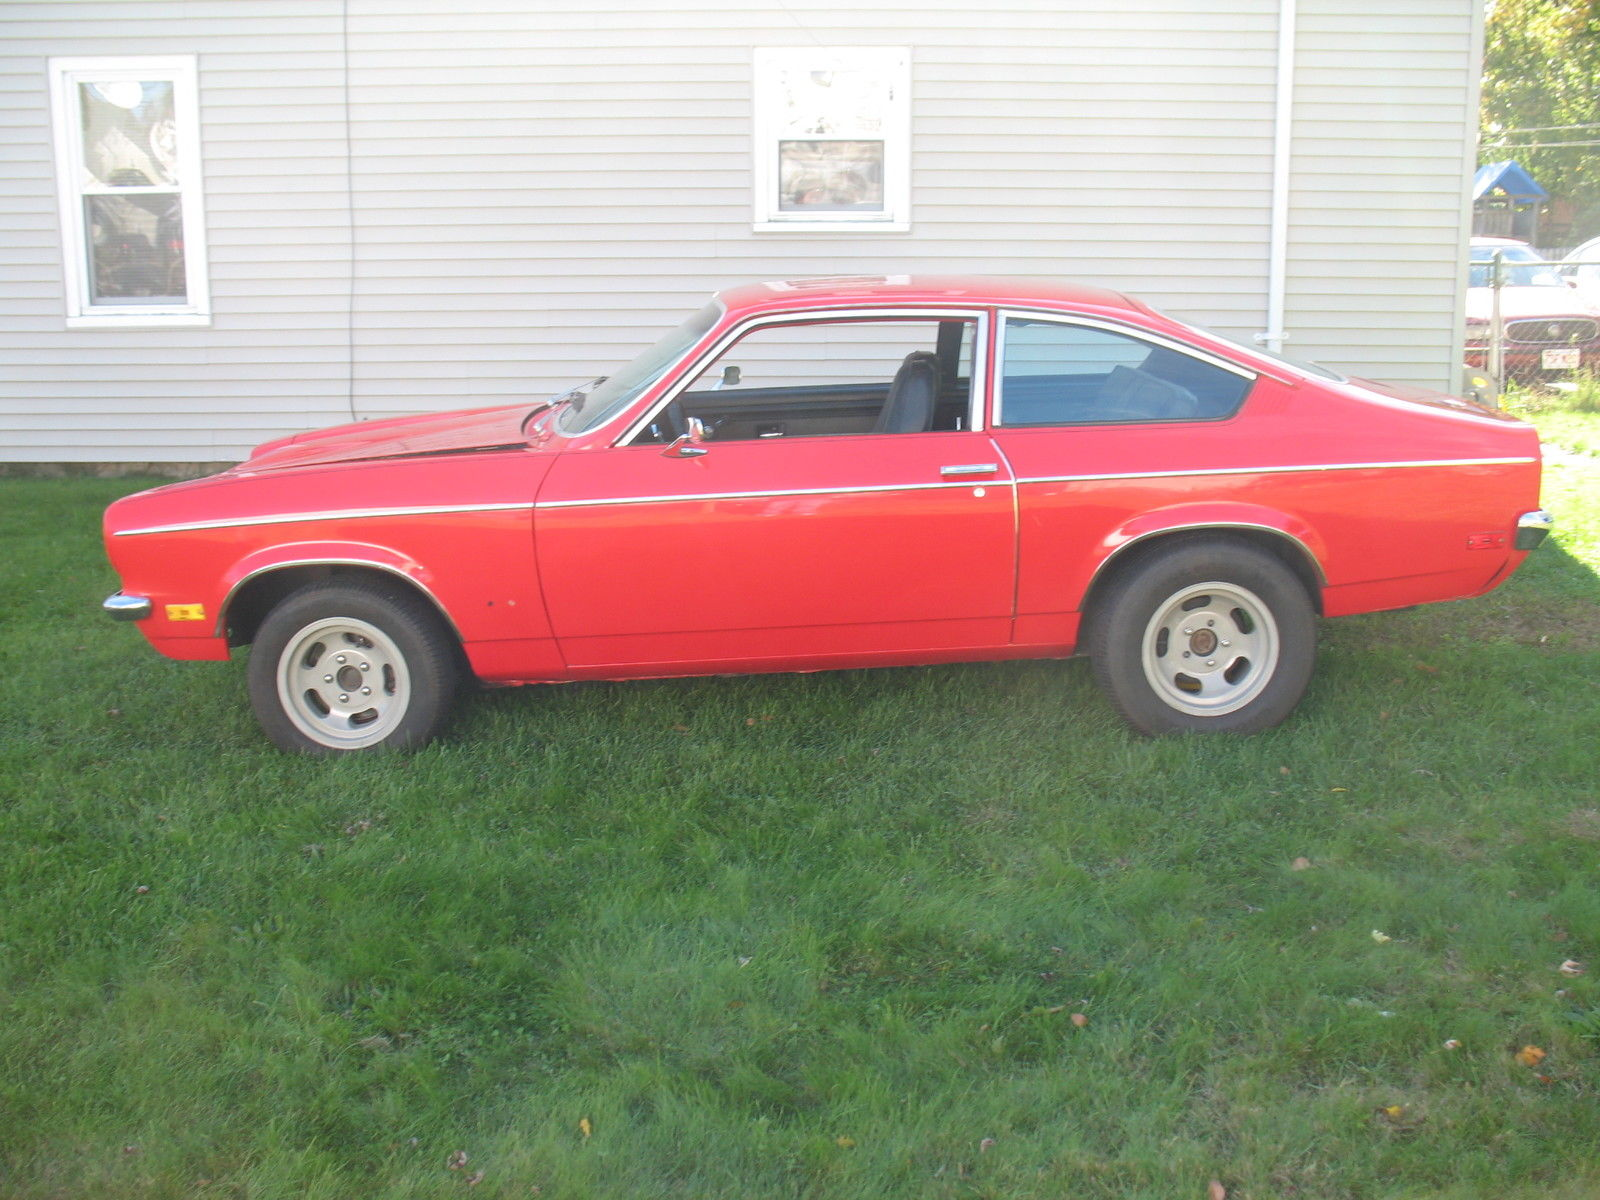 1972 chevy v8 vega 355 sbc turbo 350 transmission narrowed 12 bolt rearend. Black Bedroom Furniture Sets. Home Design Ideas